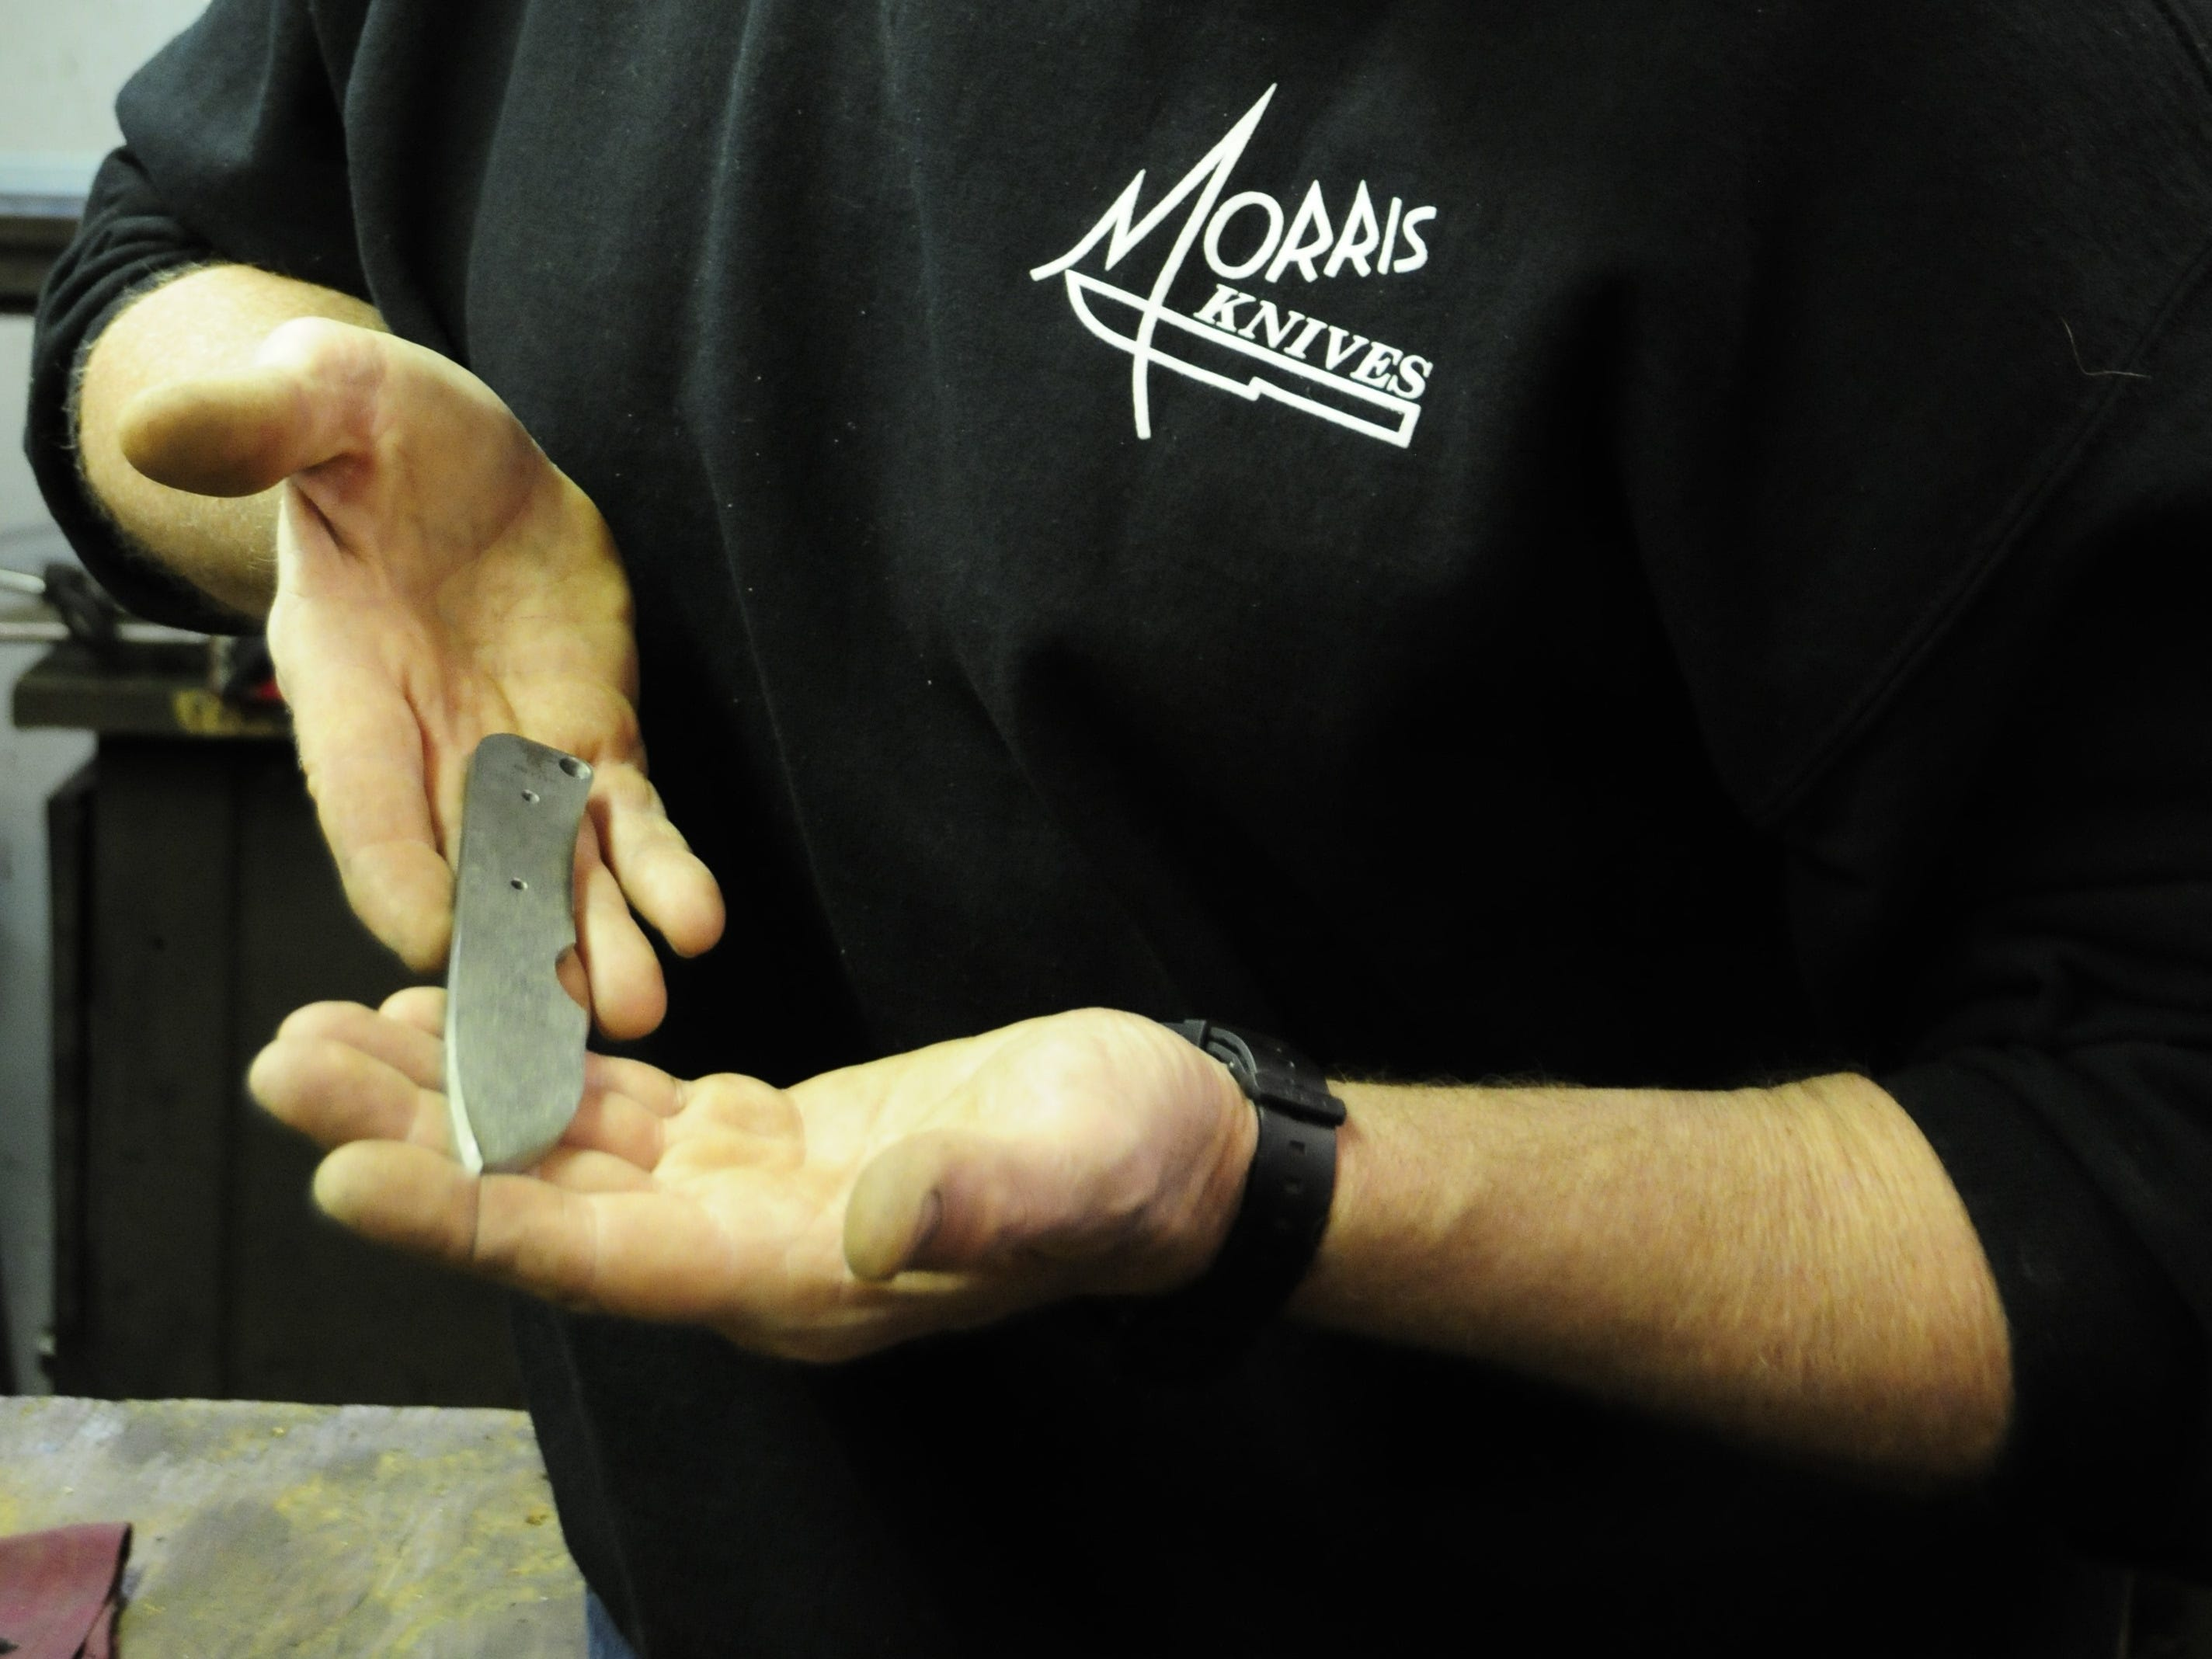 Knifemaker Michael Morris displays a blade at his shop in Yale.